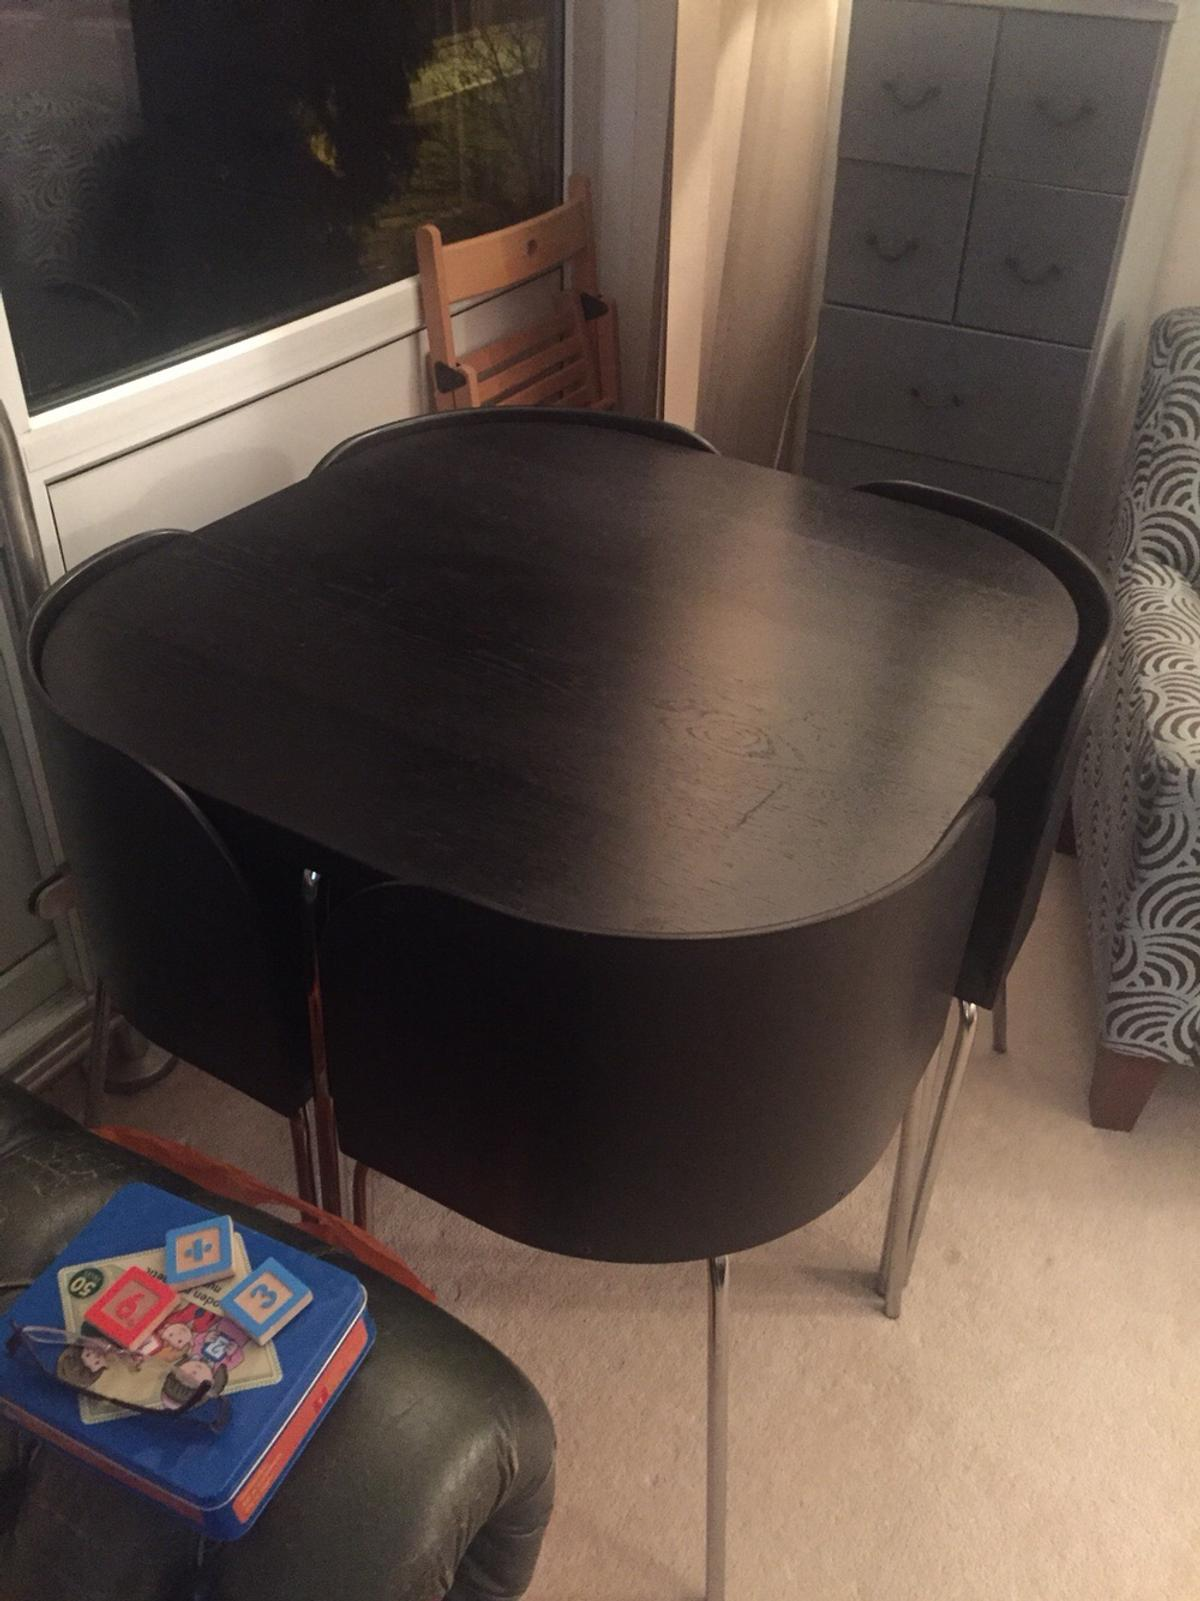 Ikea Fusion Space Saving Dining Table Chairs In B93 Dorridge For 60 00 For Sale Shpock